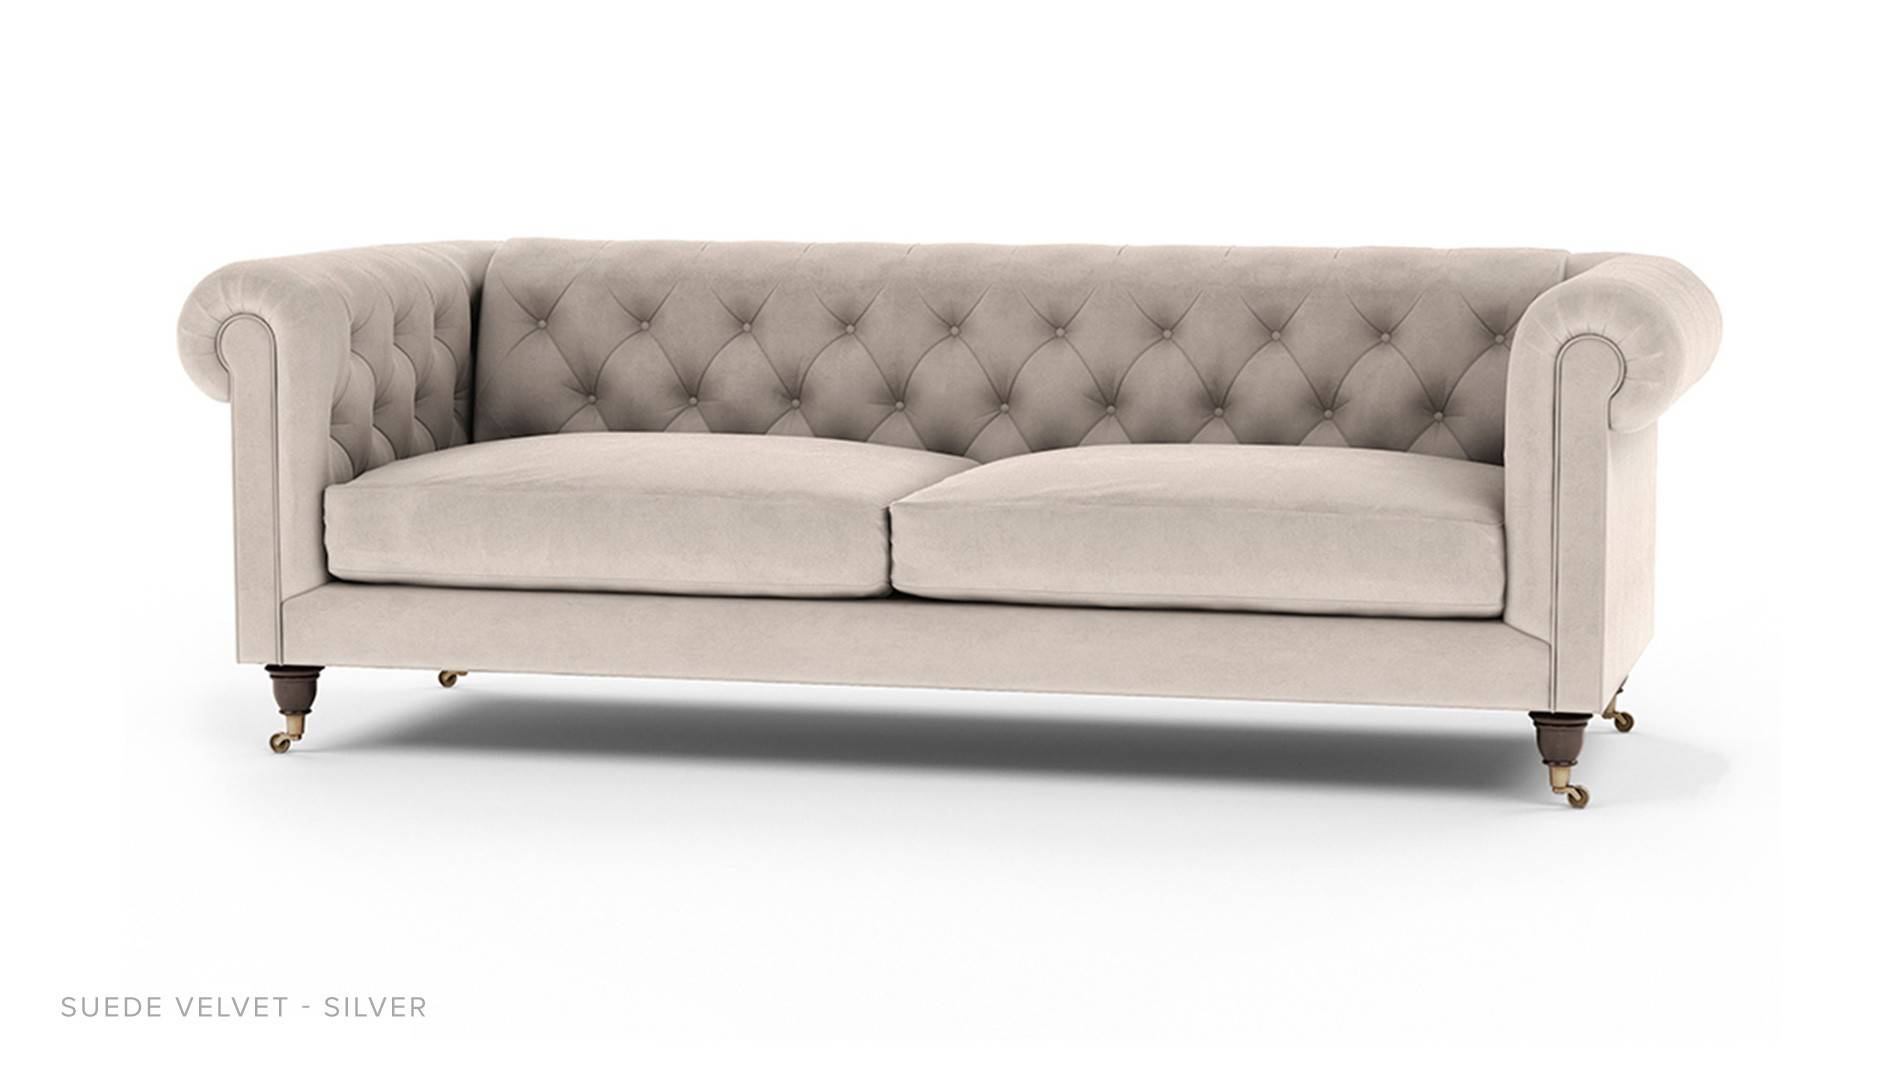 Sofa - Luxdeco intended for Chesterfield Furniture (Image 27 of 30)